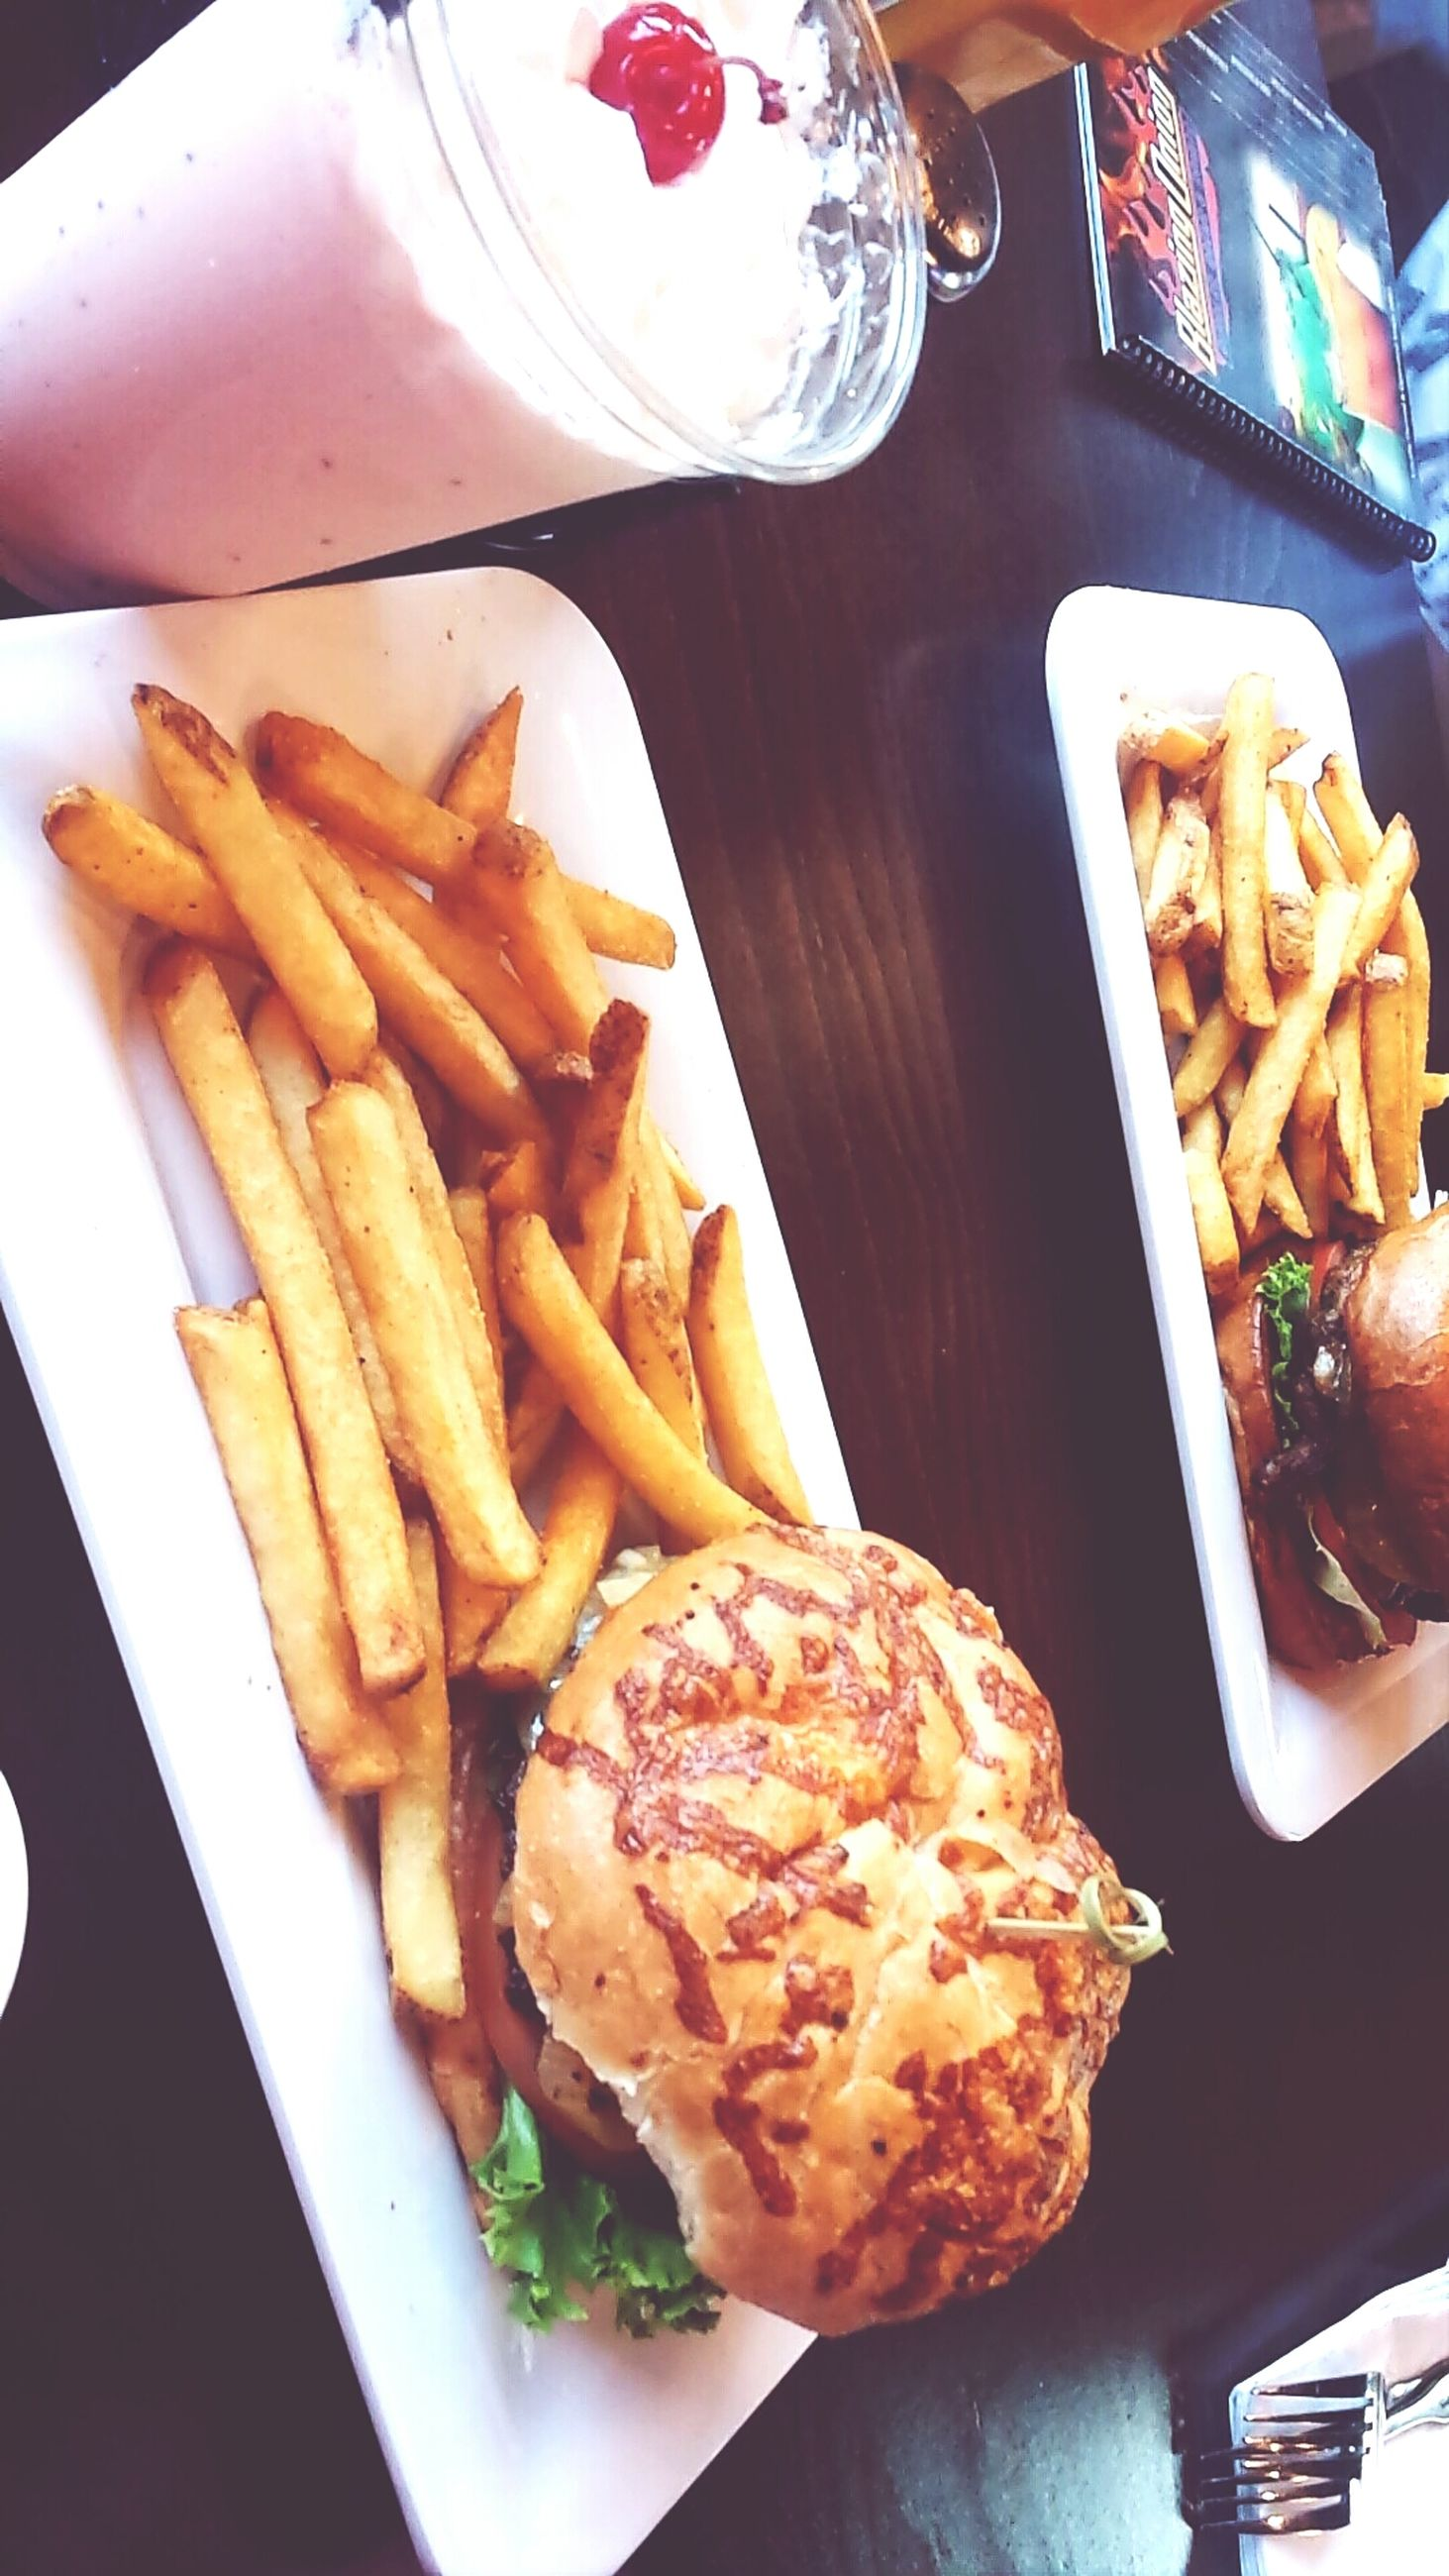 food, food and drink, indoors, freshness, ready-to-eat, plate, still life, table, meal, serving size, meat, indulgence, french fries, unhealthy eating, close-up, high angle view, restaurant, fork, temptation